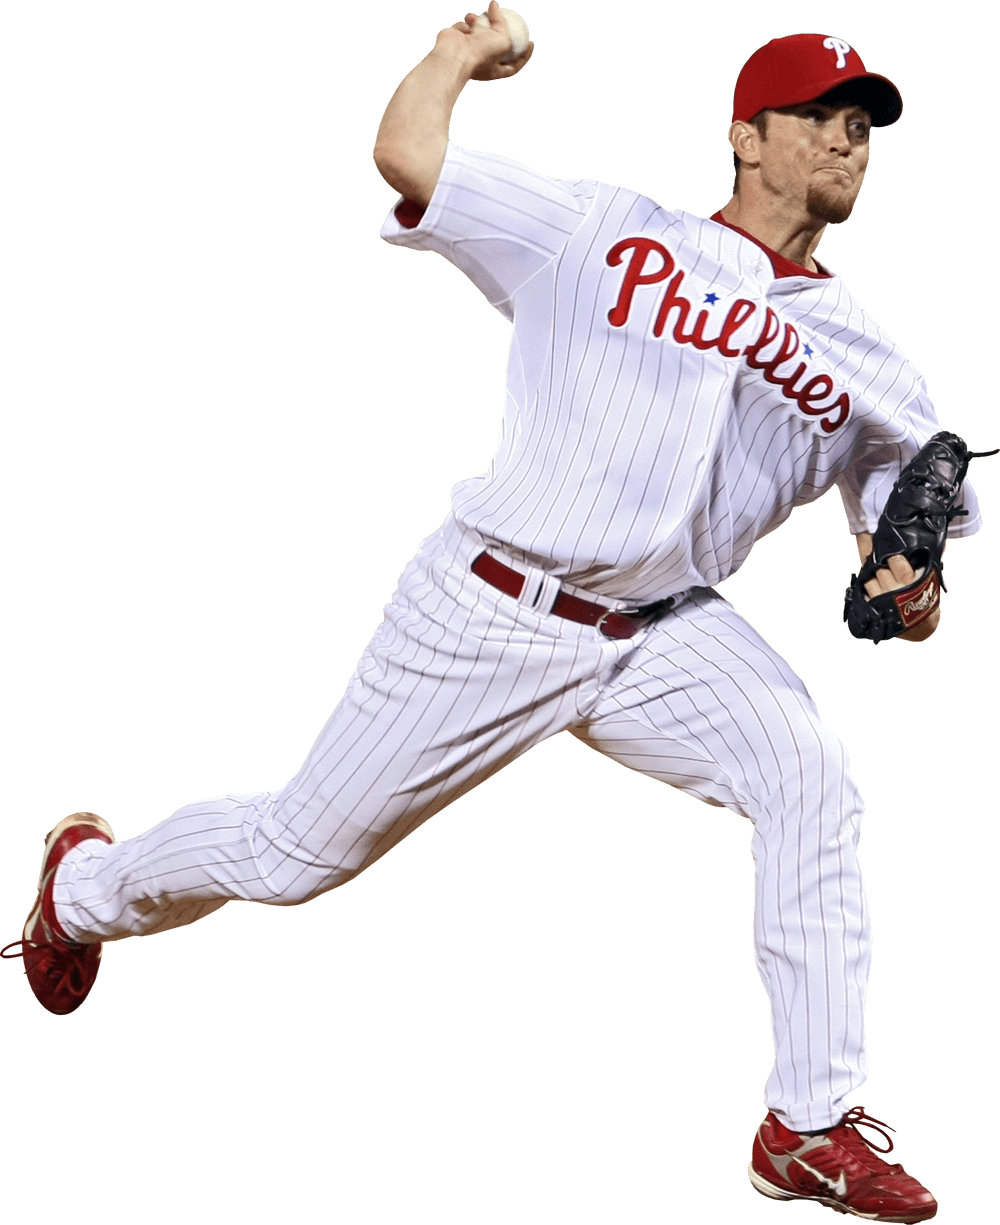 Baseball uniform clipart graphic royalty free Philadelphia Phillies Player transparent PNG - StickPNG graphic royalty free